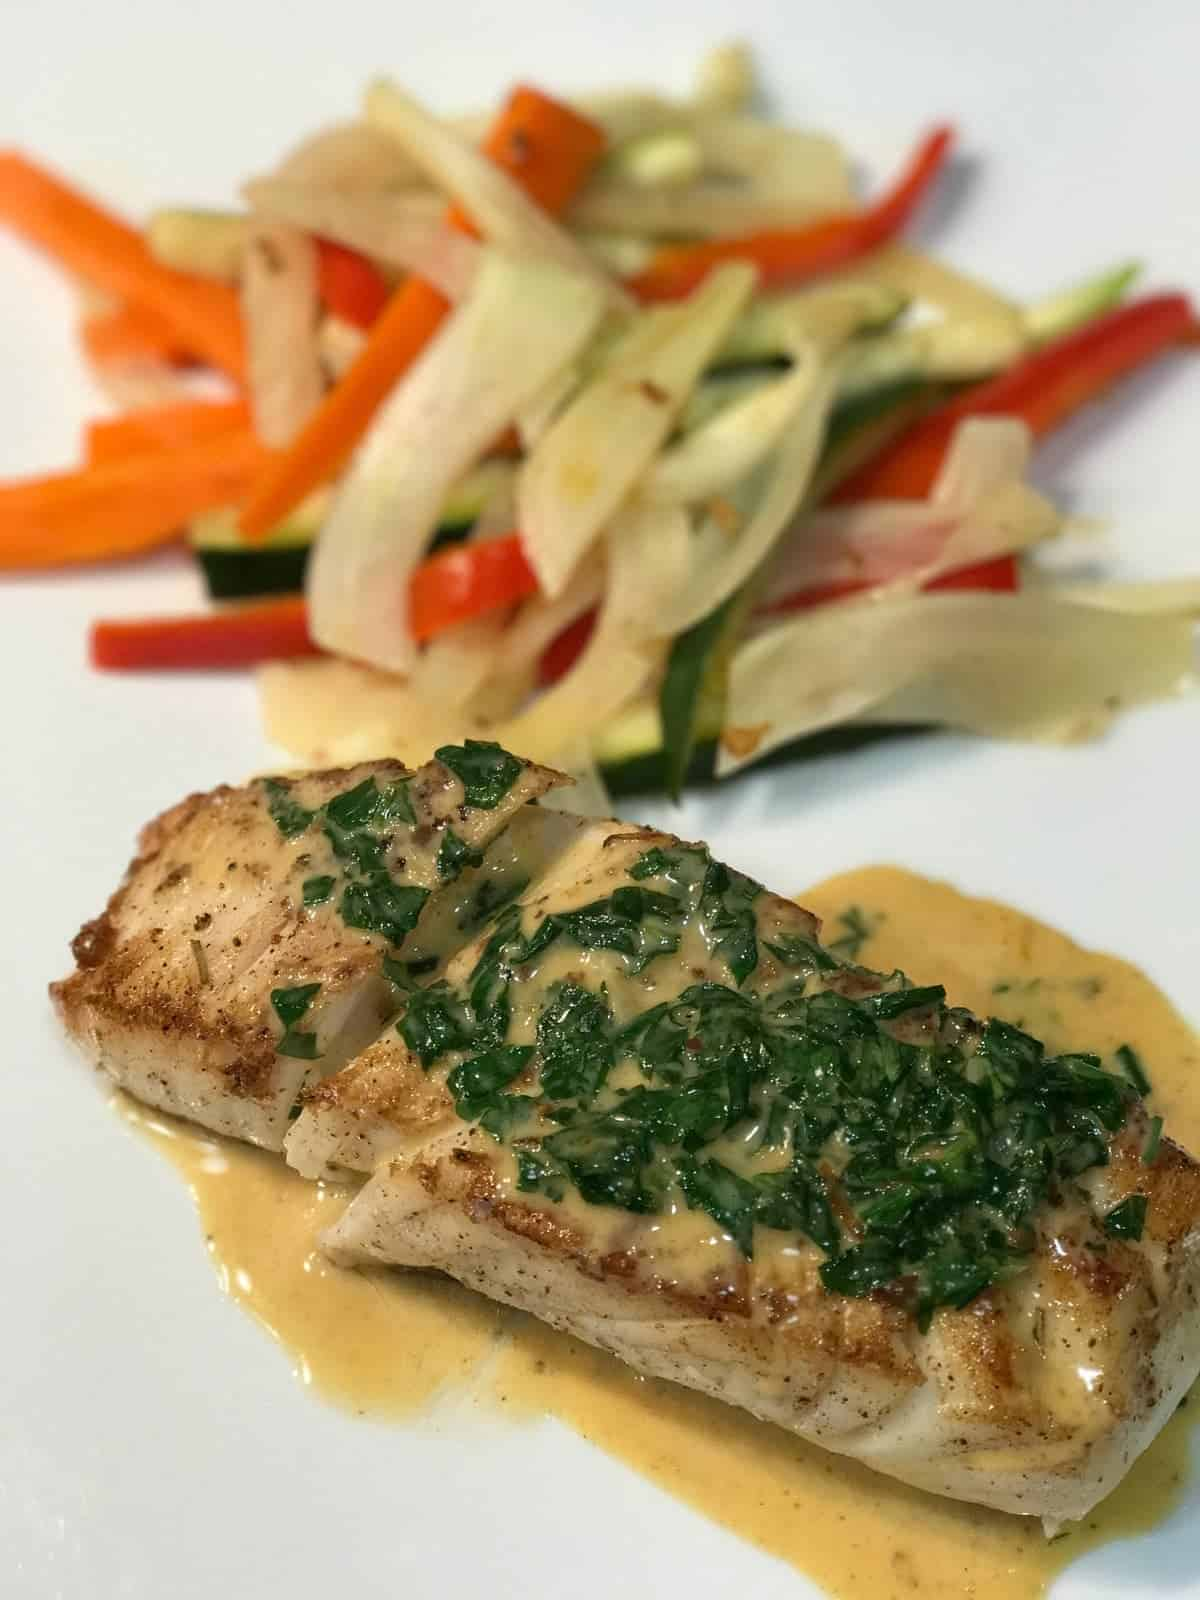 Pan Seared Halibut with Citrus Cream Sauce served with juleinned fennel, carrots, zucchini, and red peppers. Recipe by foodology geek.